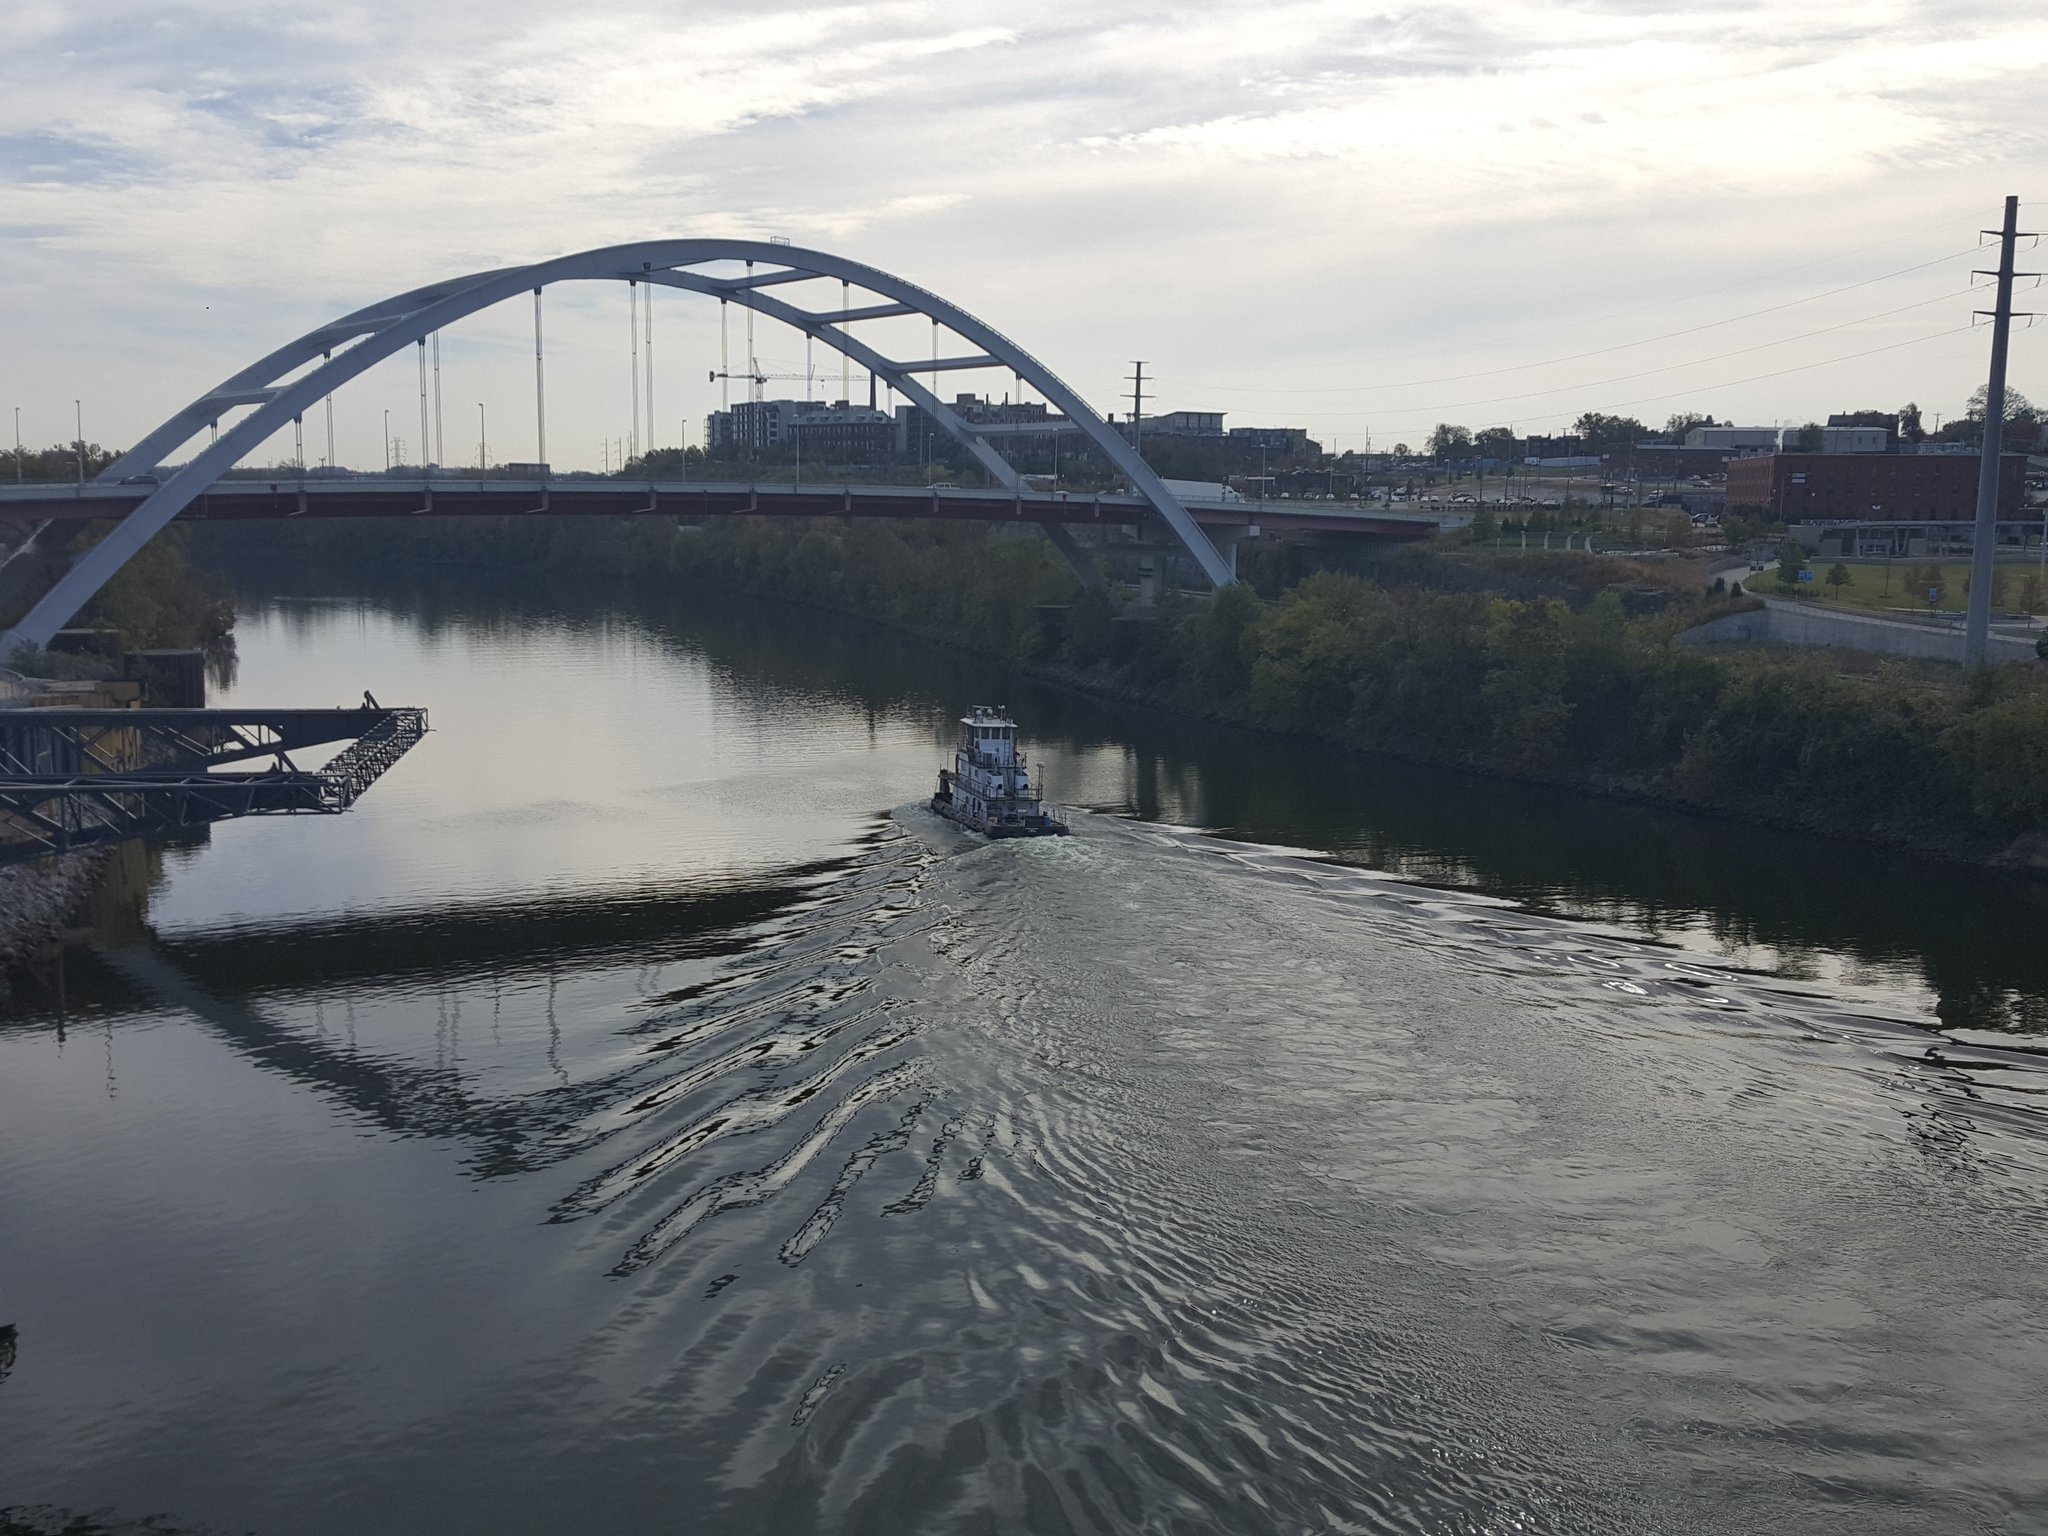 #Nashville tow boat shows movement is a theme of #geography. https://t.co/G0YOvMYR8l #GAWchat https://t.co/44sexqJgPd